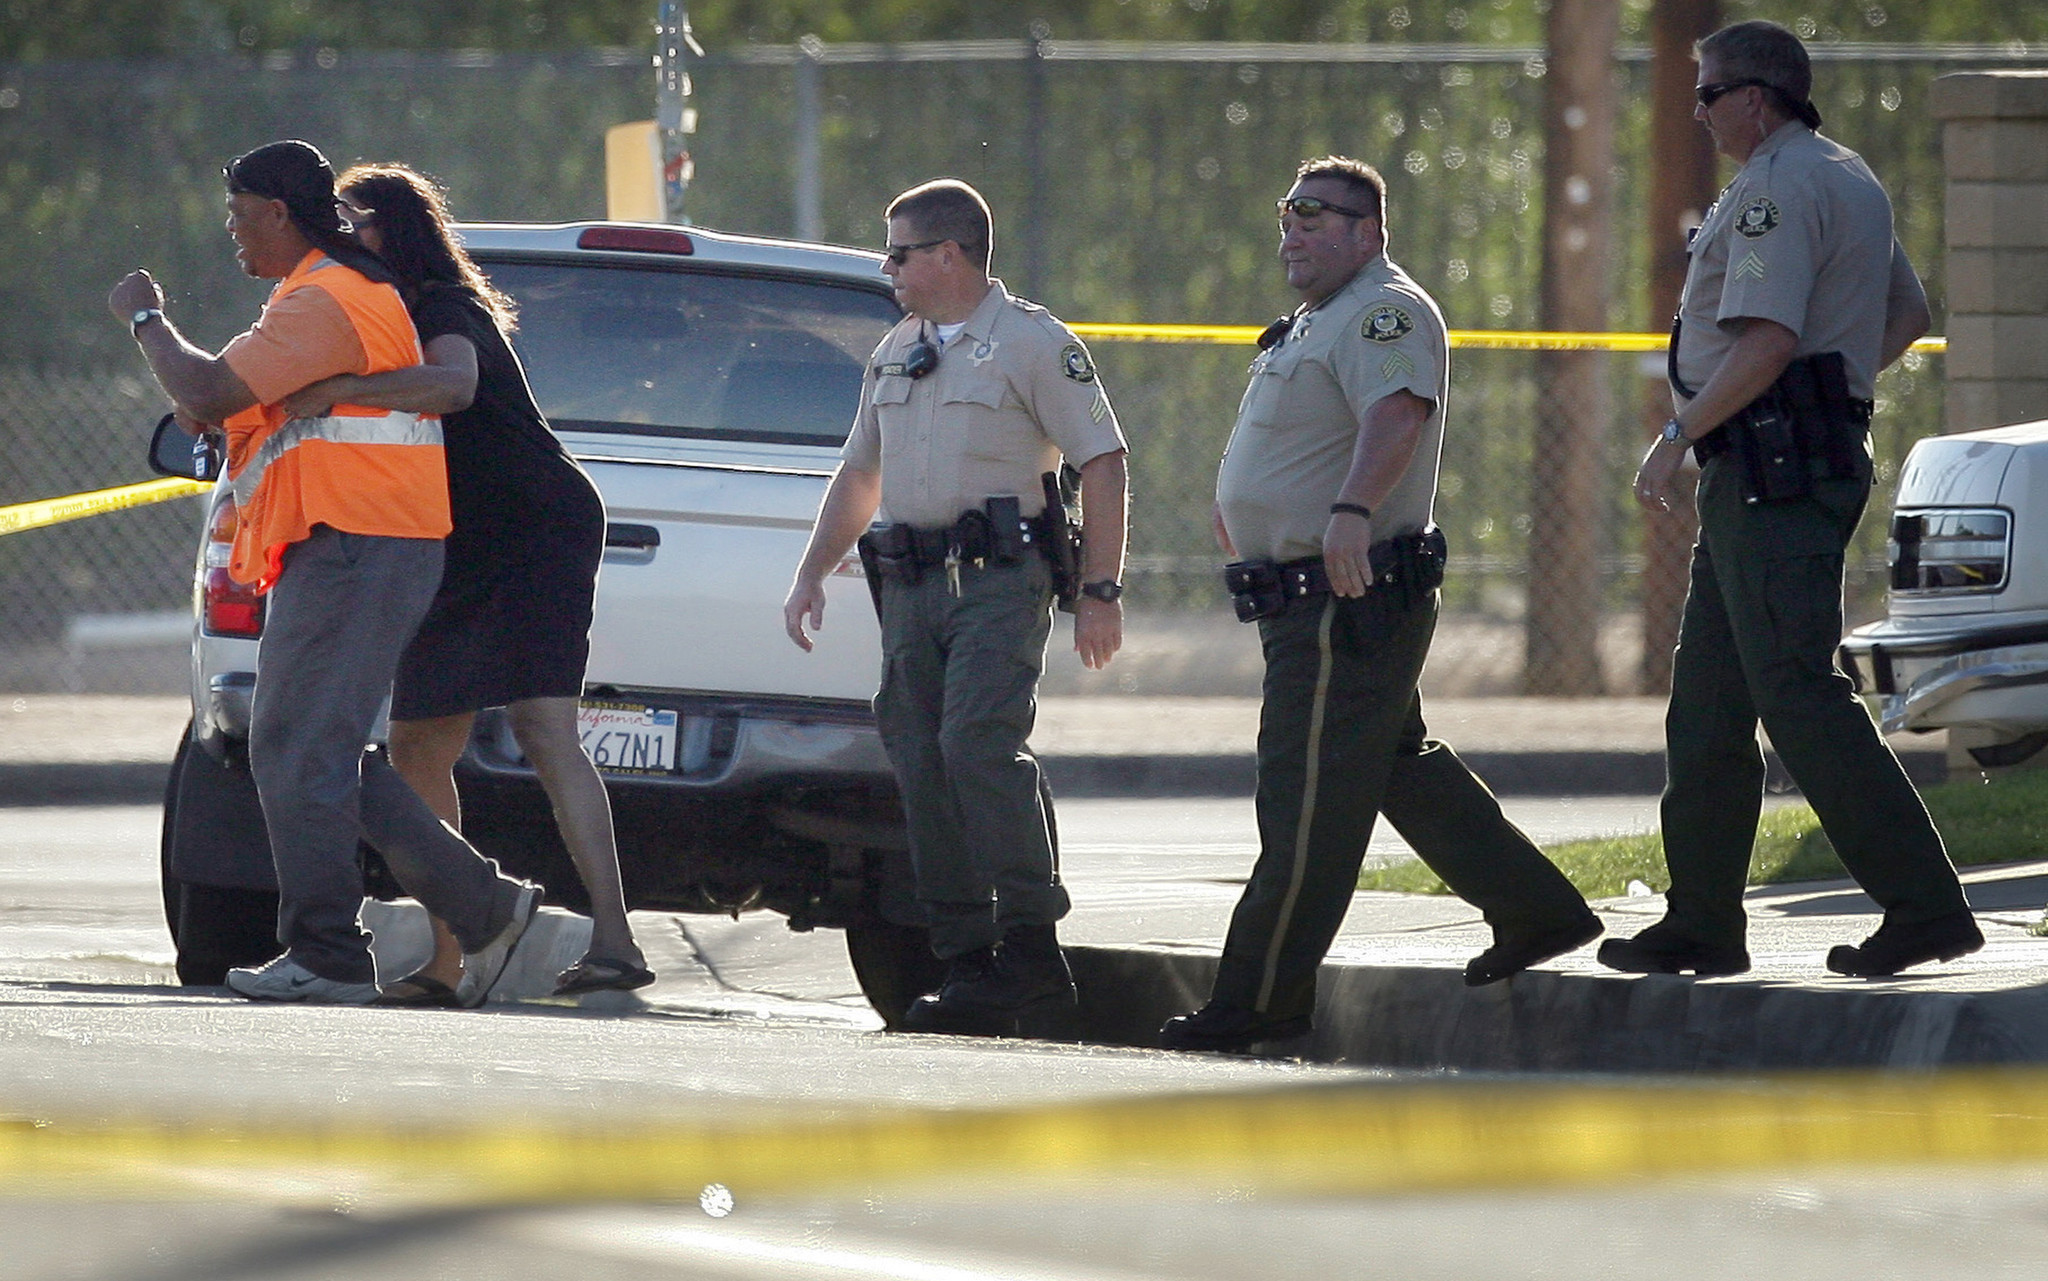 Shell Station Near Me >> Victims, suspect in Moreno Valley shootings identified - LA Times